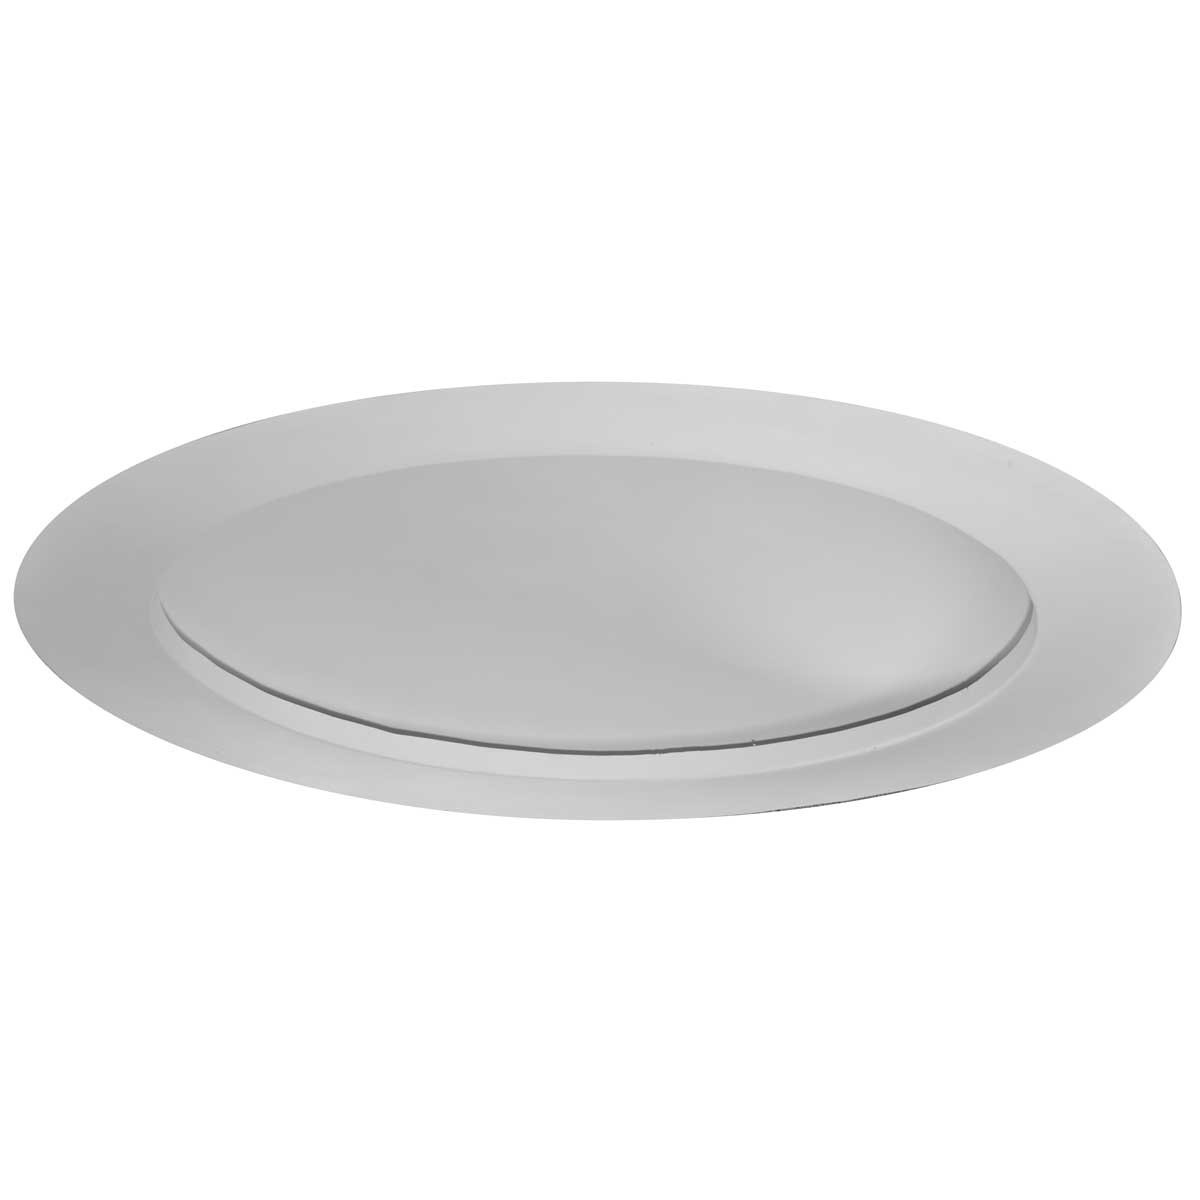 """EM-DOME50AR - 50 3/8""""OD x 48""""ID x 8 7/8""""D Artisan Ceiling Dome with Light Ring (46 1/2""""Diameter x 9""""D Rough Opening)"""